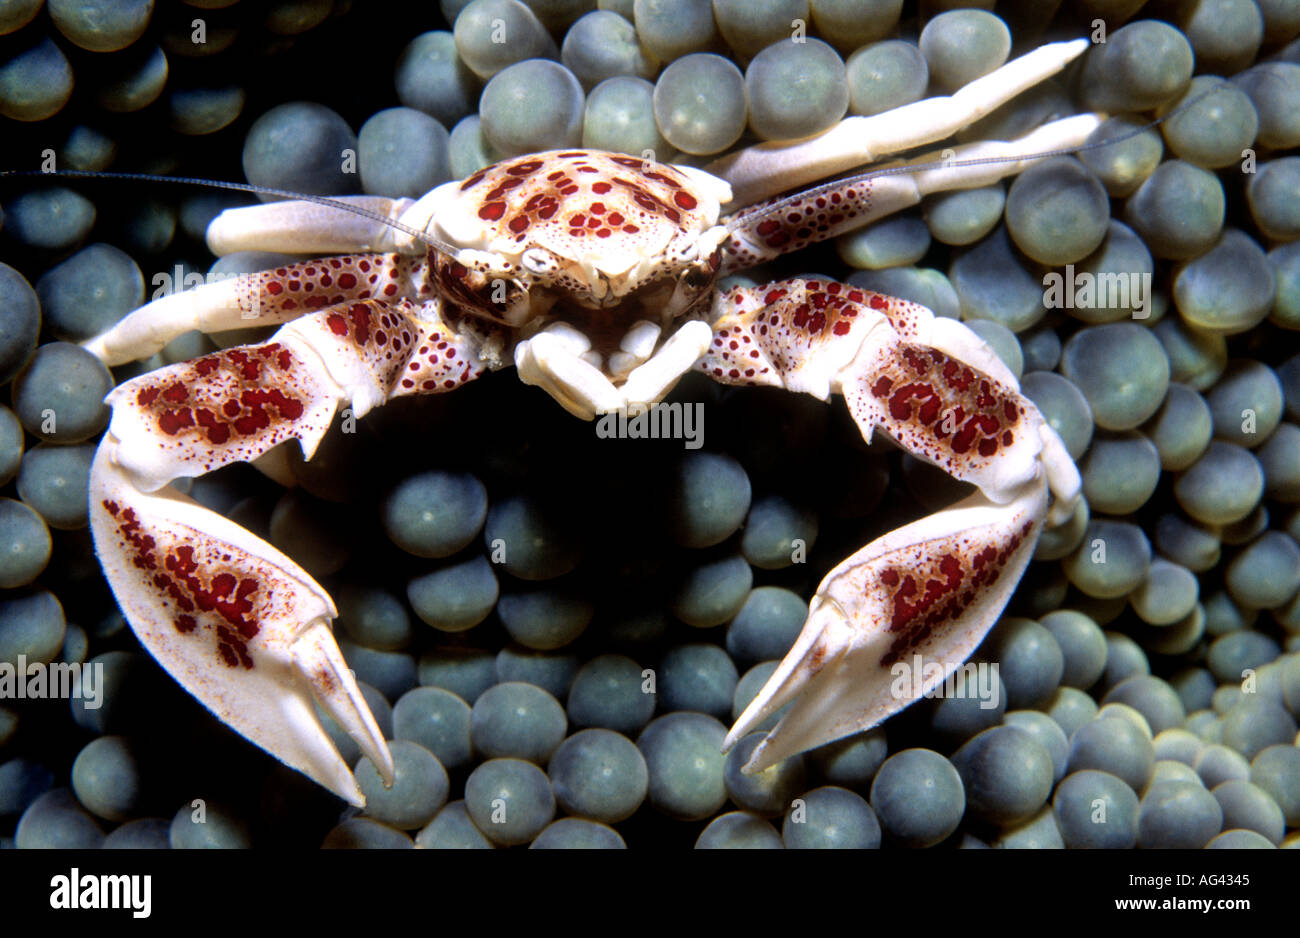 porcelain-crab-neopetrolisthes-maculatus-living-in-a-sea-anemone-also-AG4345.jpg